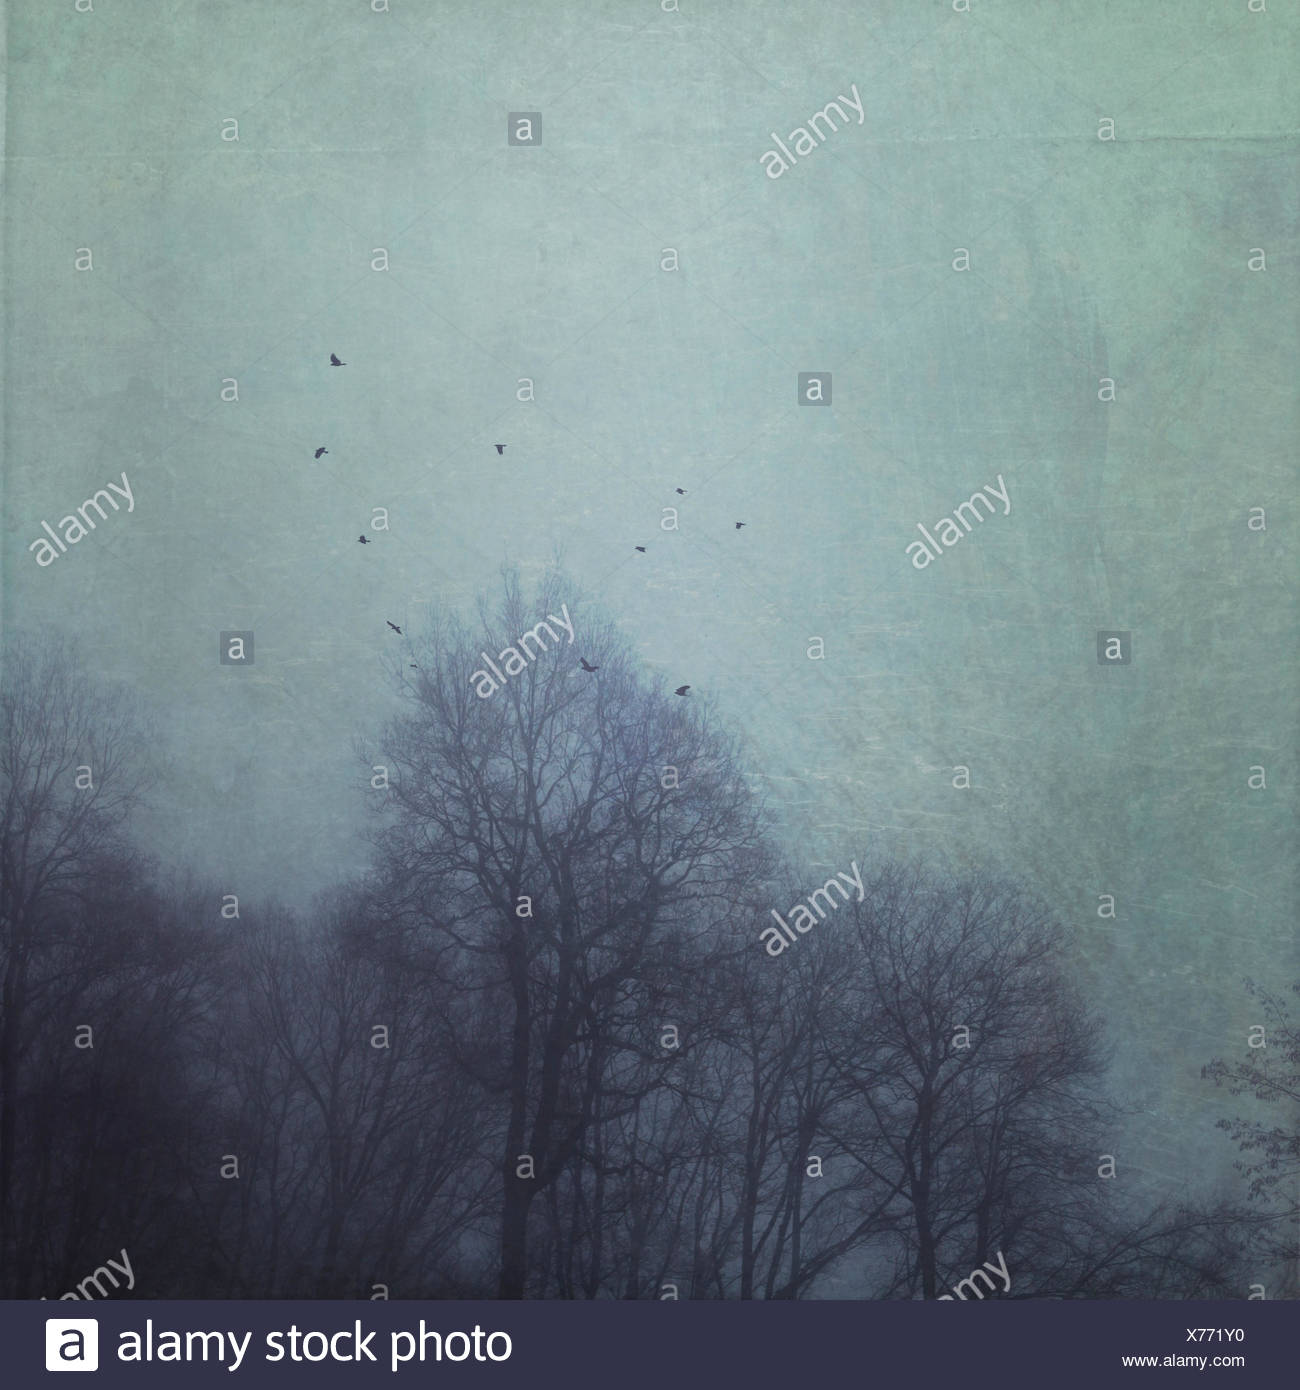 Silhouettes of trees during fog with flying birds, textured effect - Stock Image